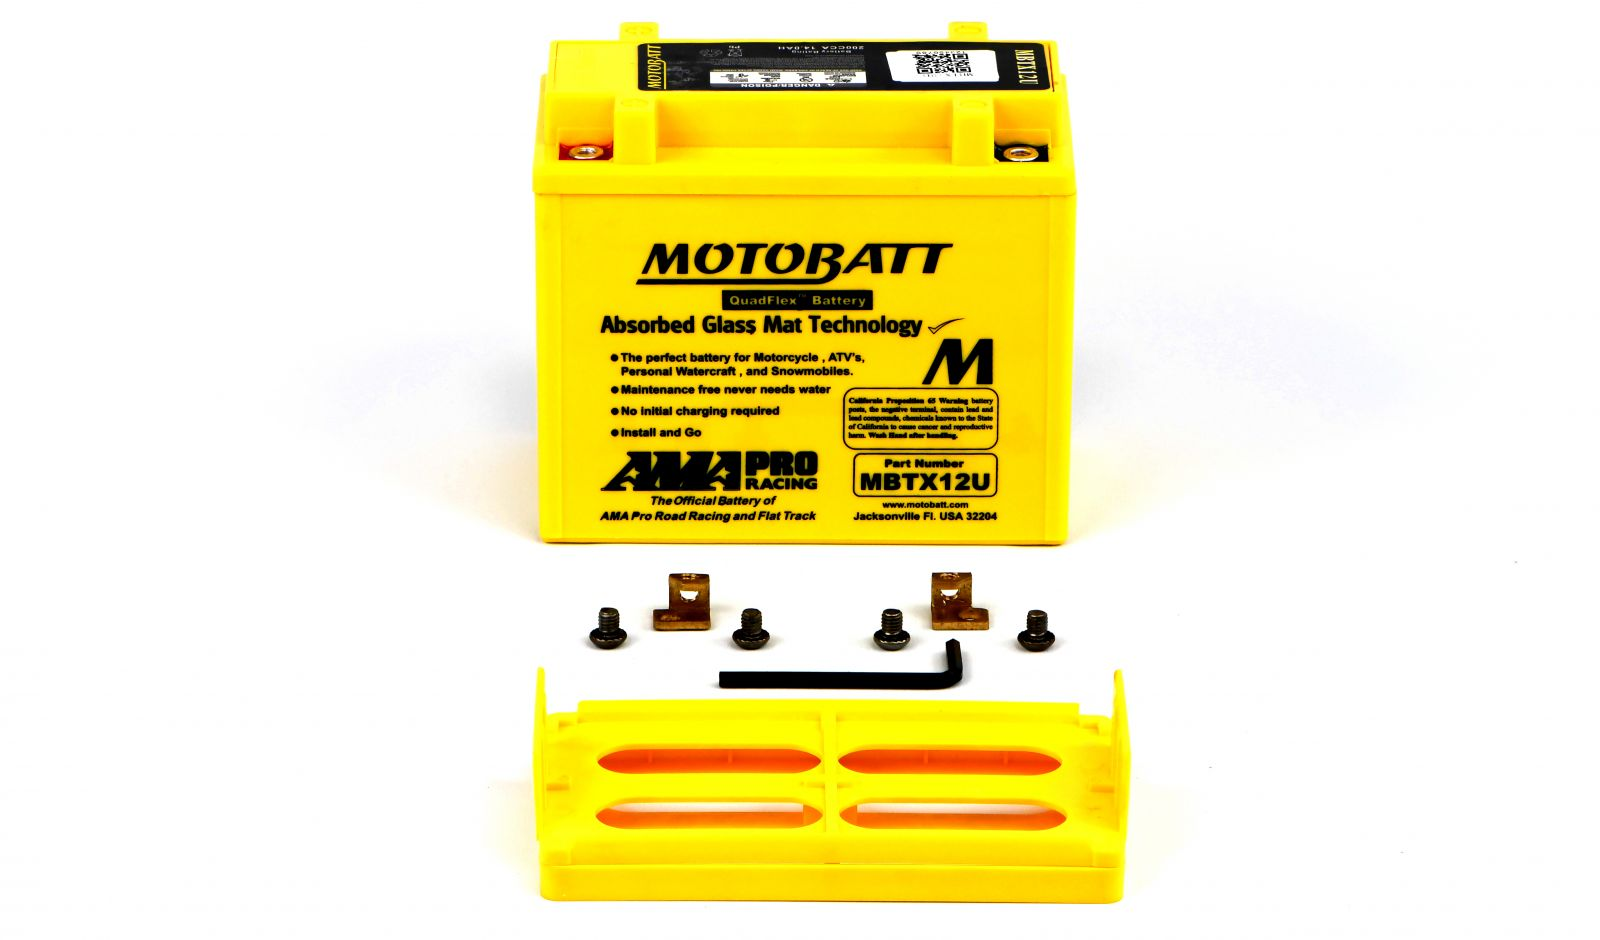 motobatt batteries - 501125MY image